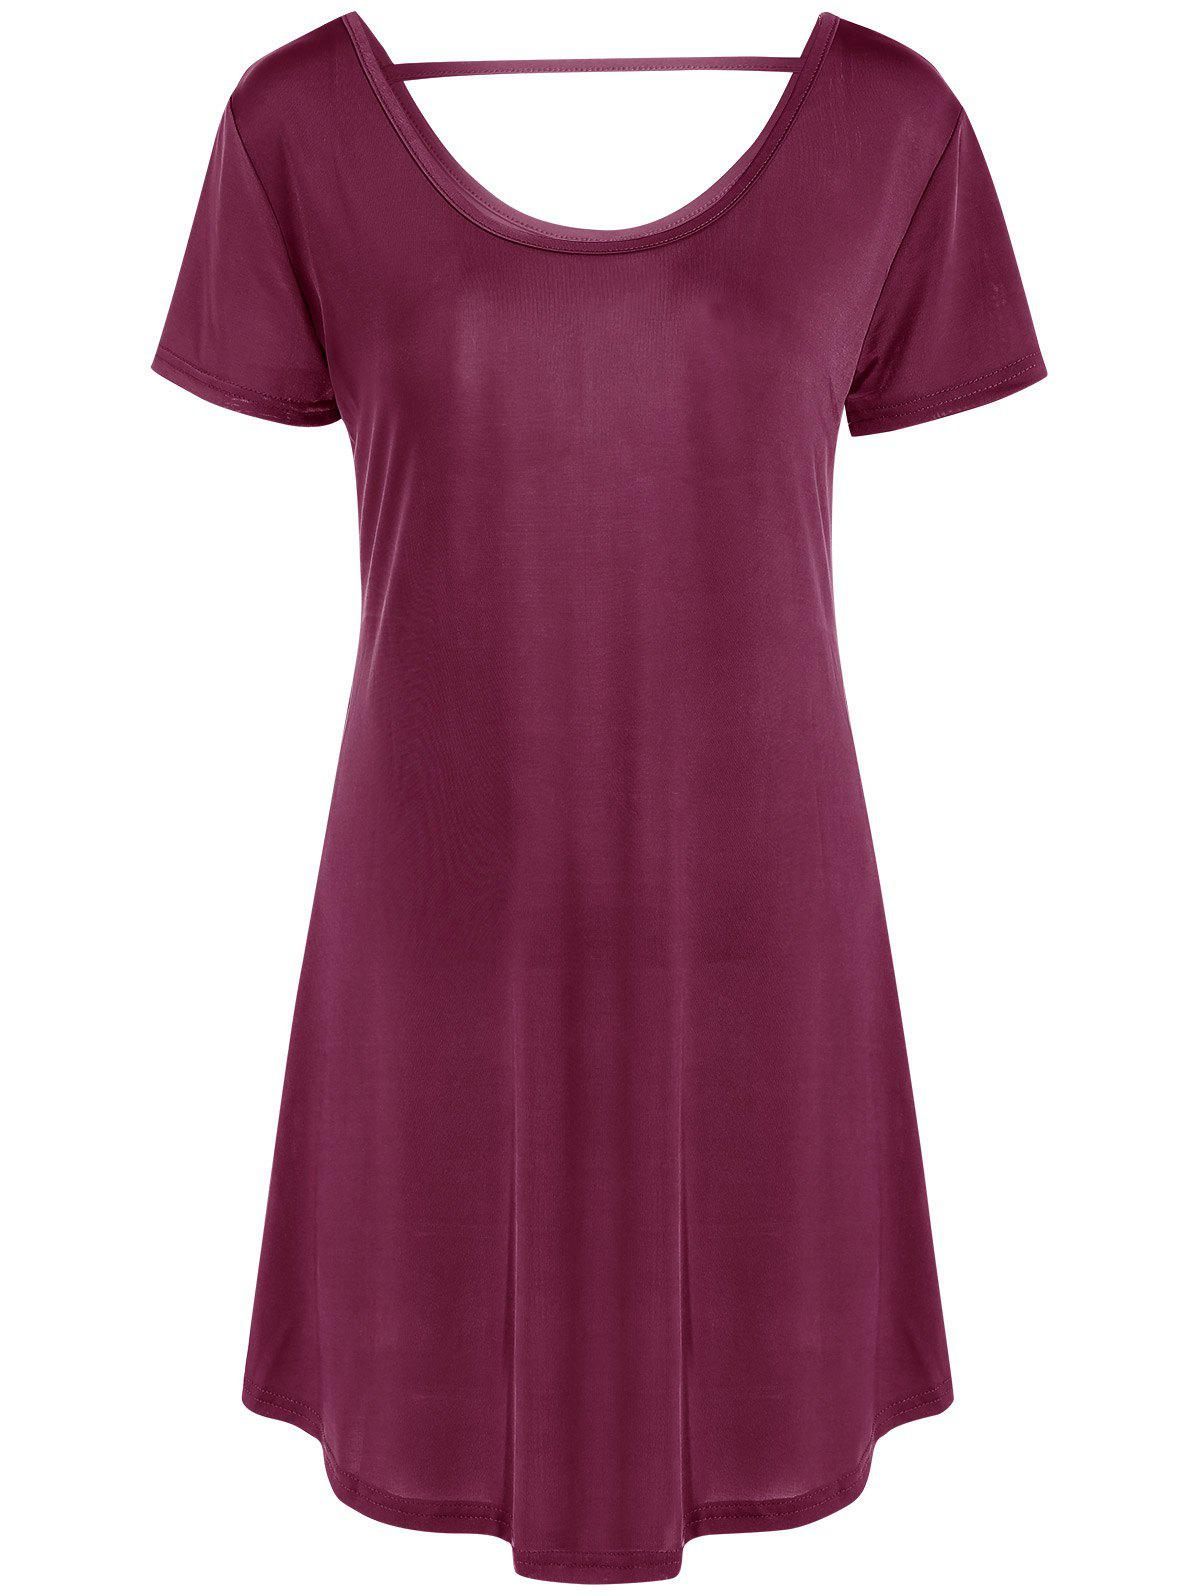 Casual Women's Hollow Out Short Sleeve Scoop Neck Dress - WINE RED 2XL